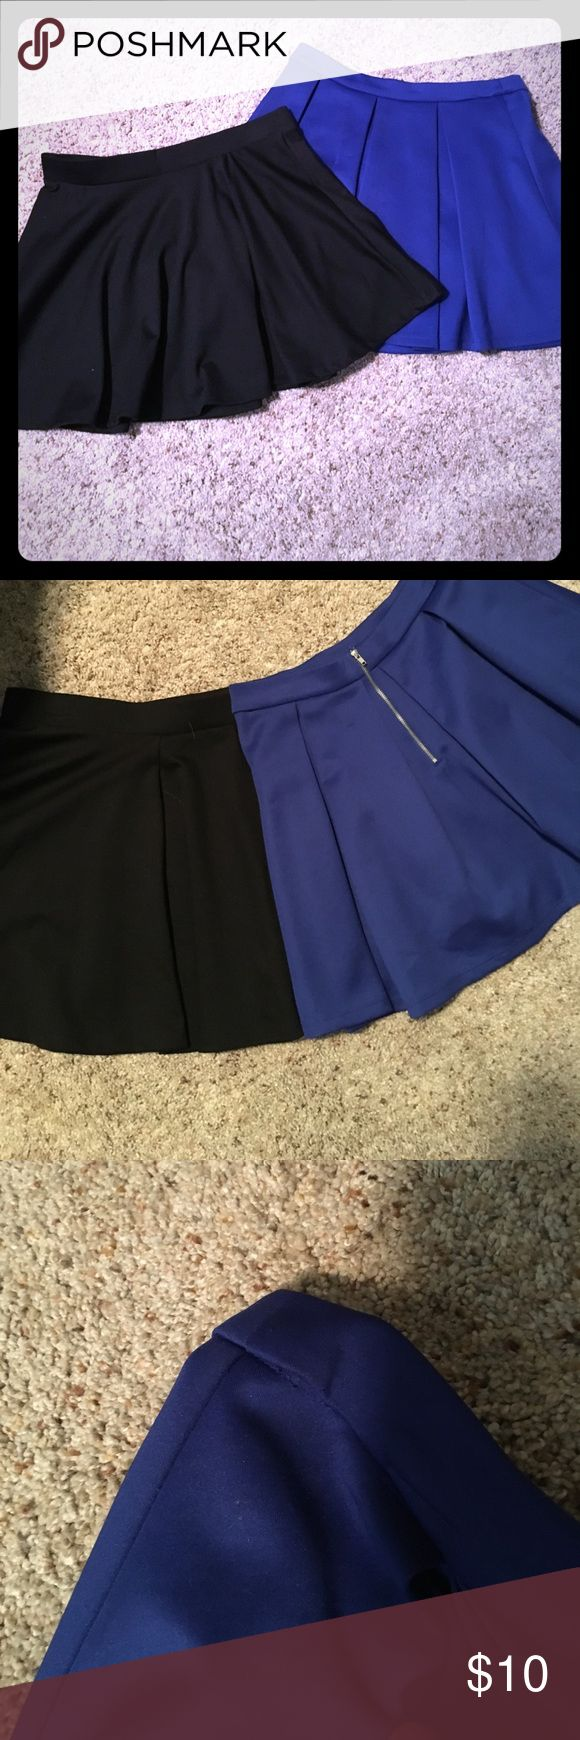 Skater Skirt Bundle 🔹◾️ 2 skater skirts, both from Forever 21. Blue skirt is size M, with minor stitching flaws on band & some snags (pictured), silver zip up back. Black skirt is size L, elastic waist, only worn once. Both are stretchy, can fit either M or L. Forever 21 Skirts Circle & Skater